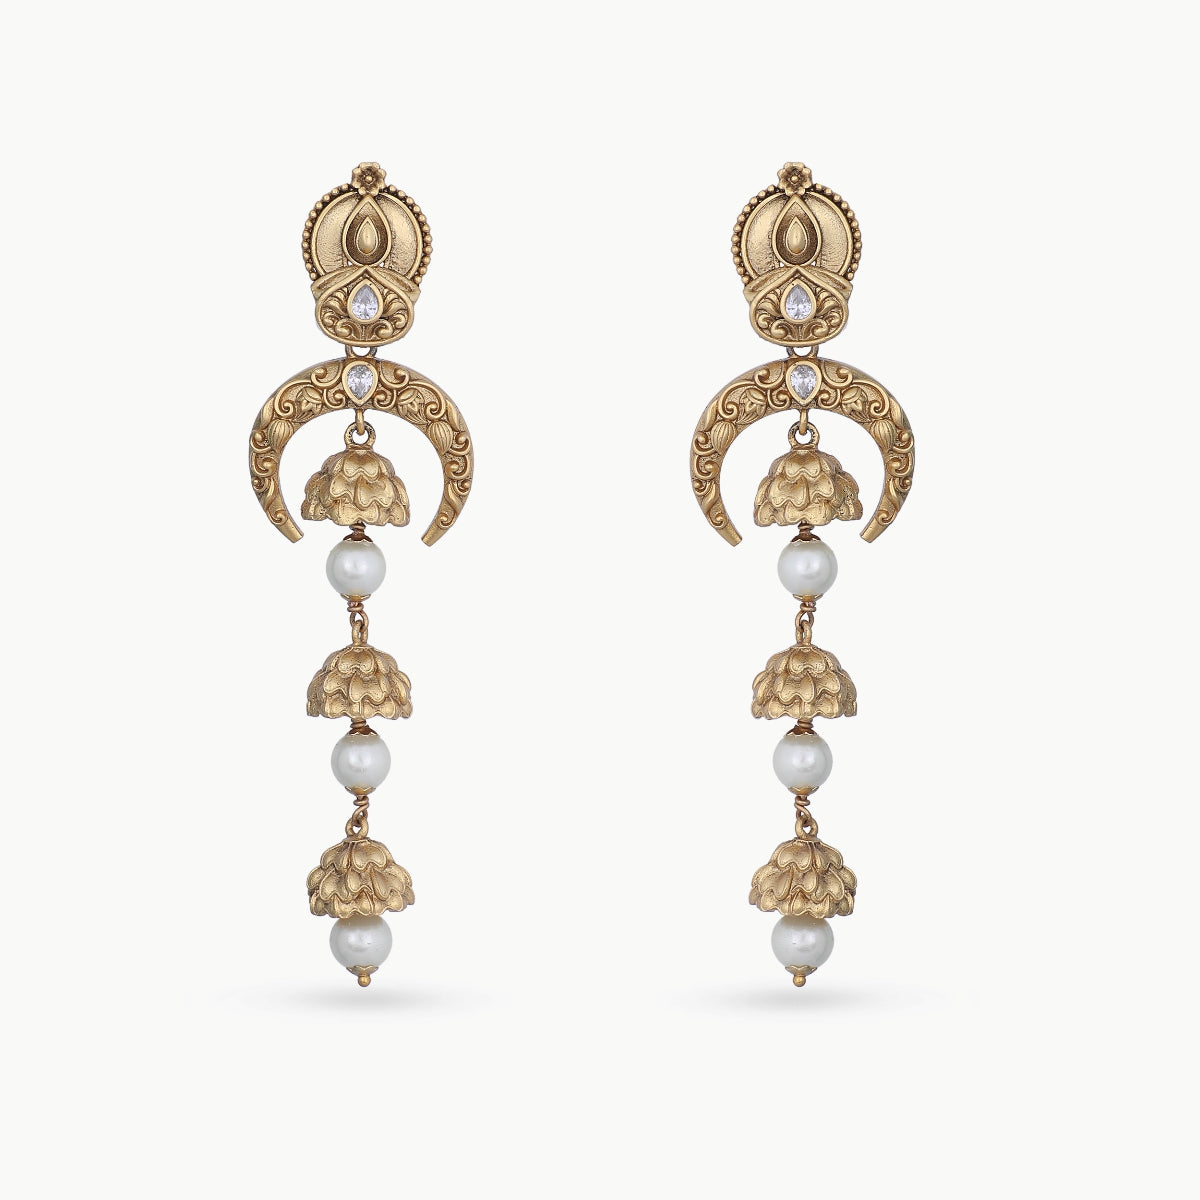 Diti Antique Earrings